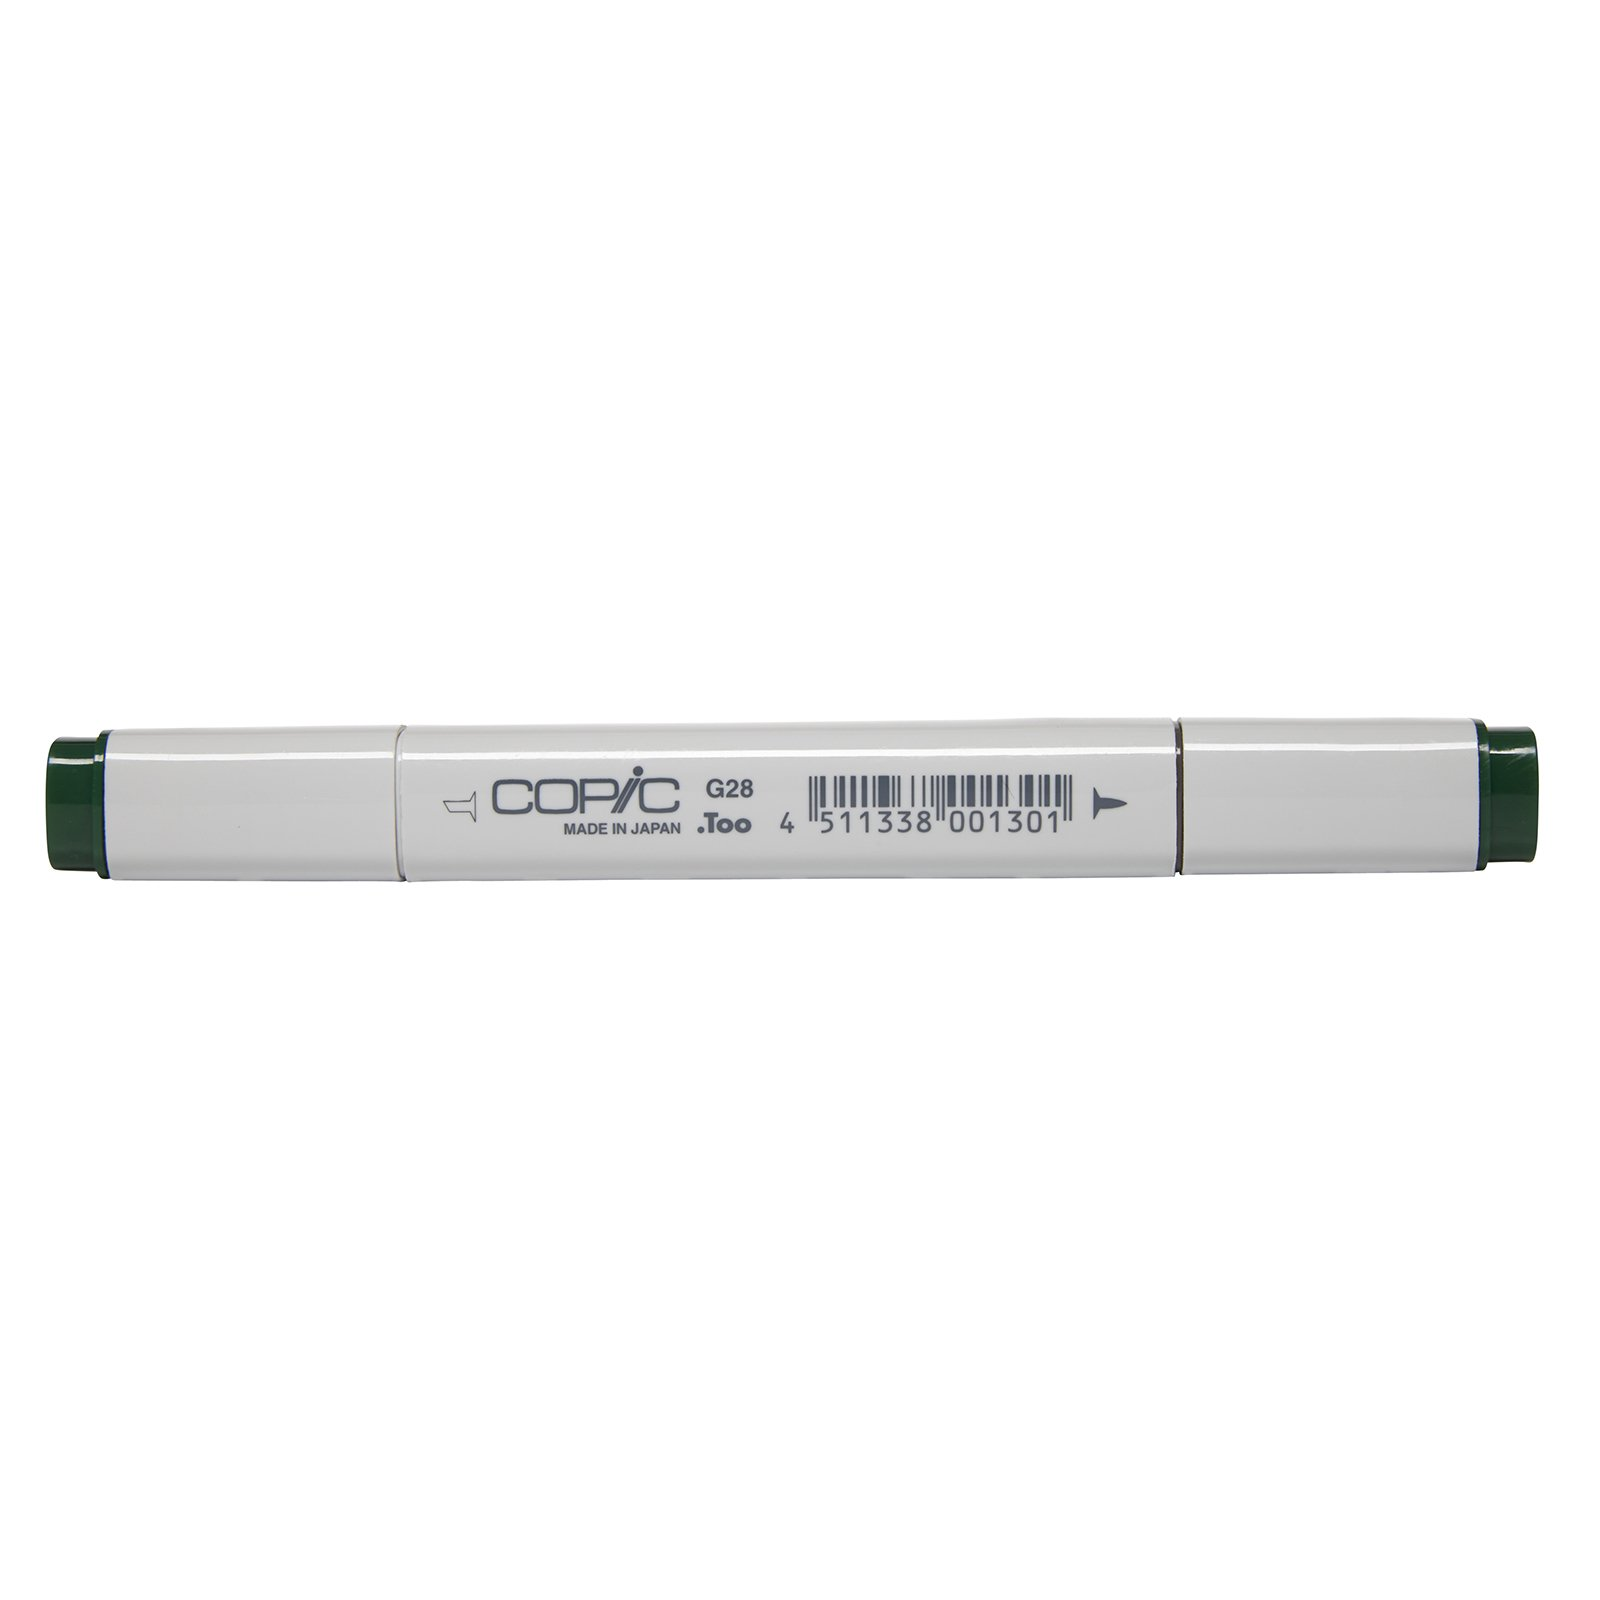 Copic Marker with Replaceable Nib, G28-Copic, Ocean Green